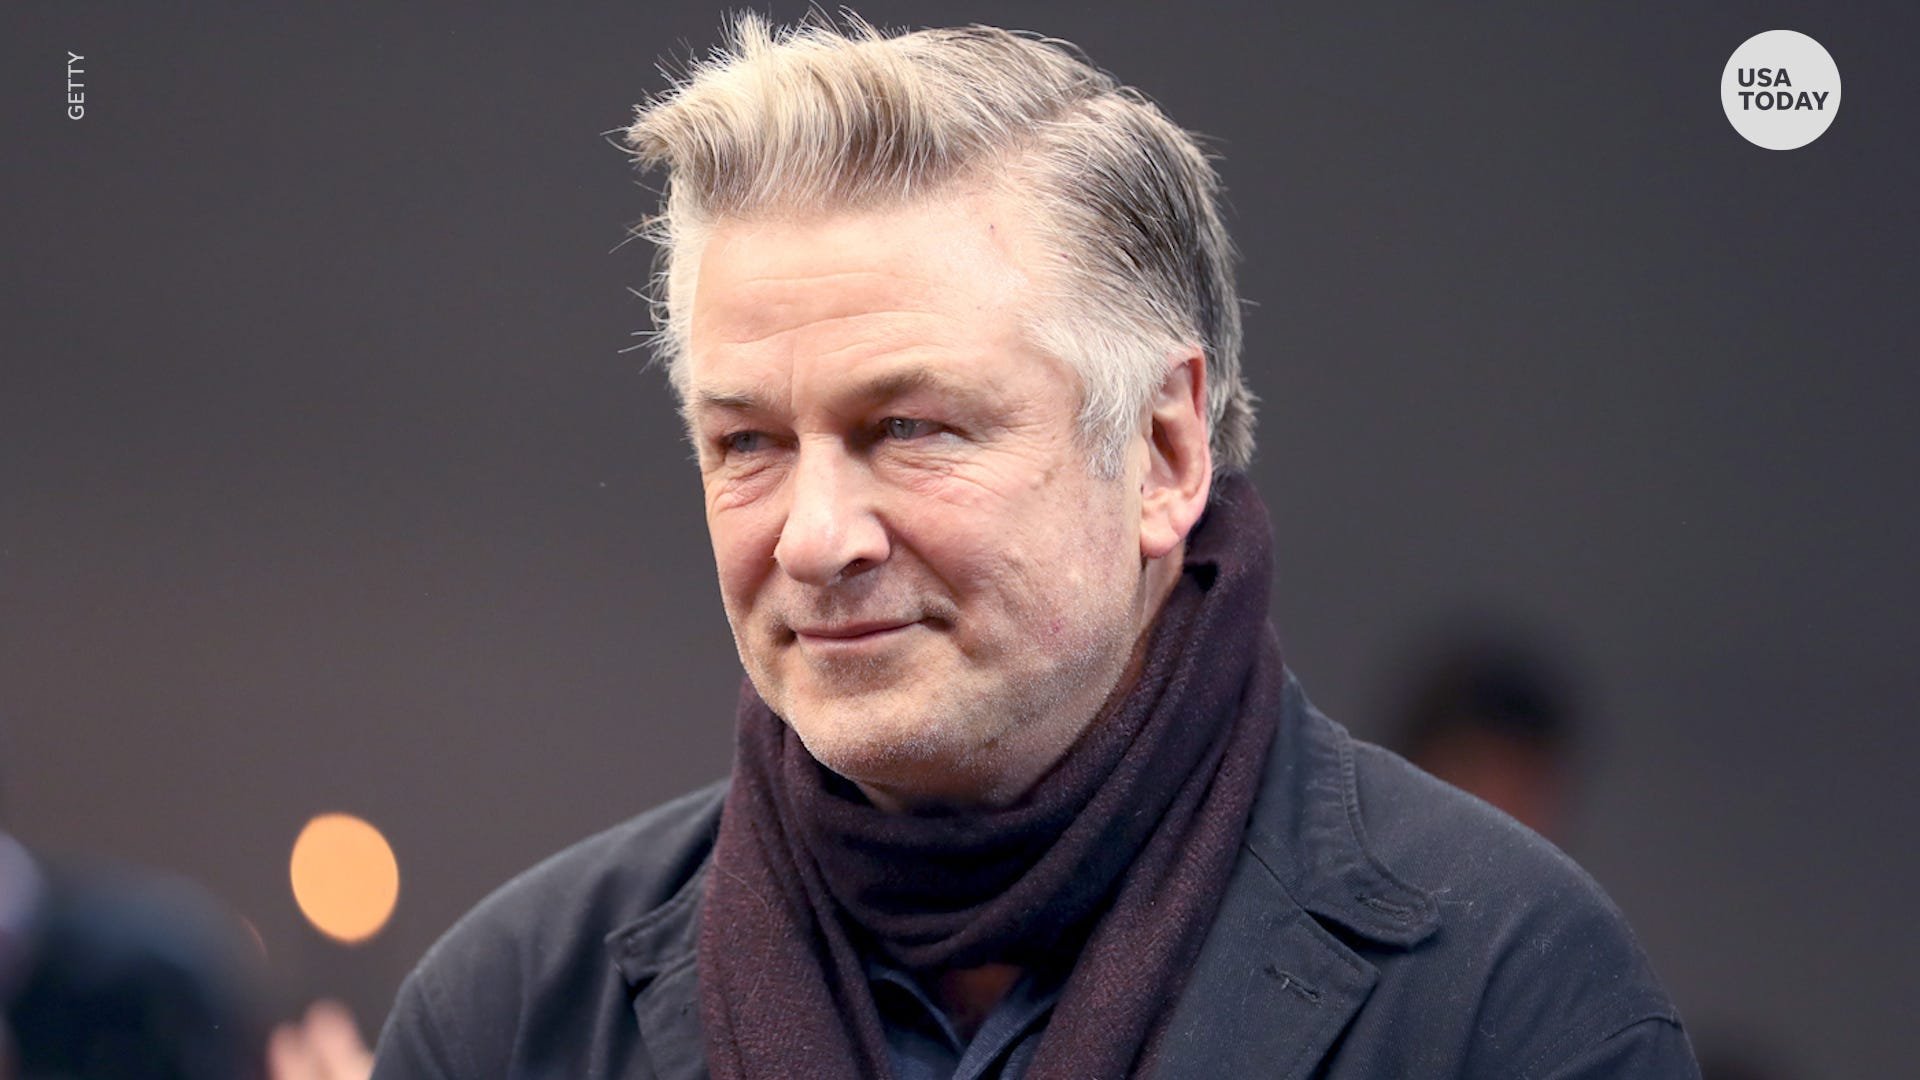 Could Alec Baldwin be charged? Who is liable in Halyna Hutchins  death? Legal experts weigh in